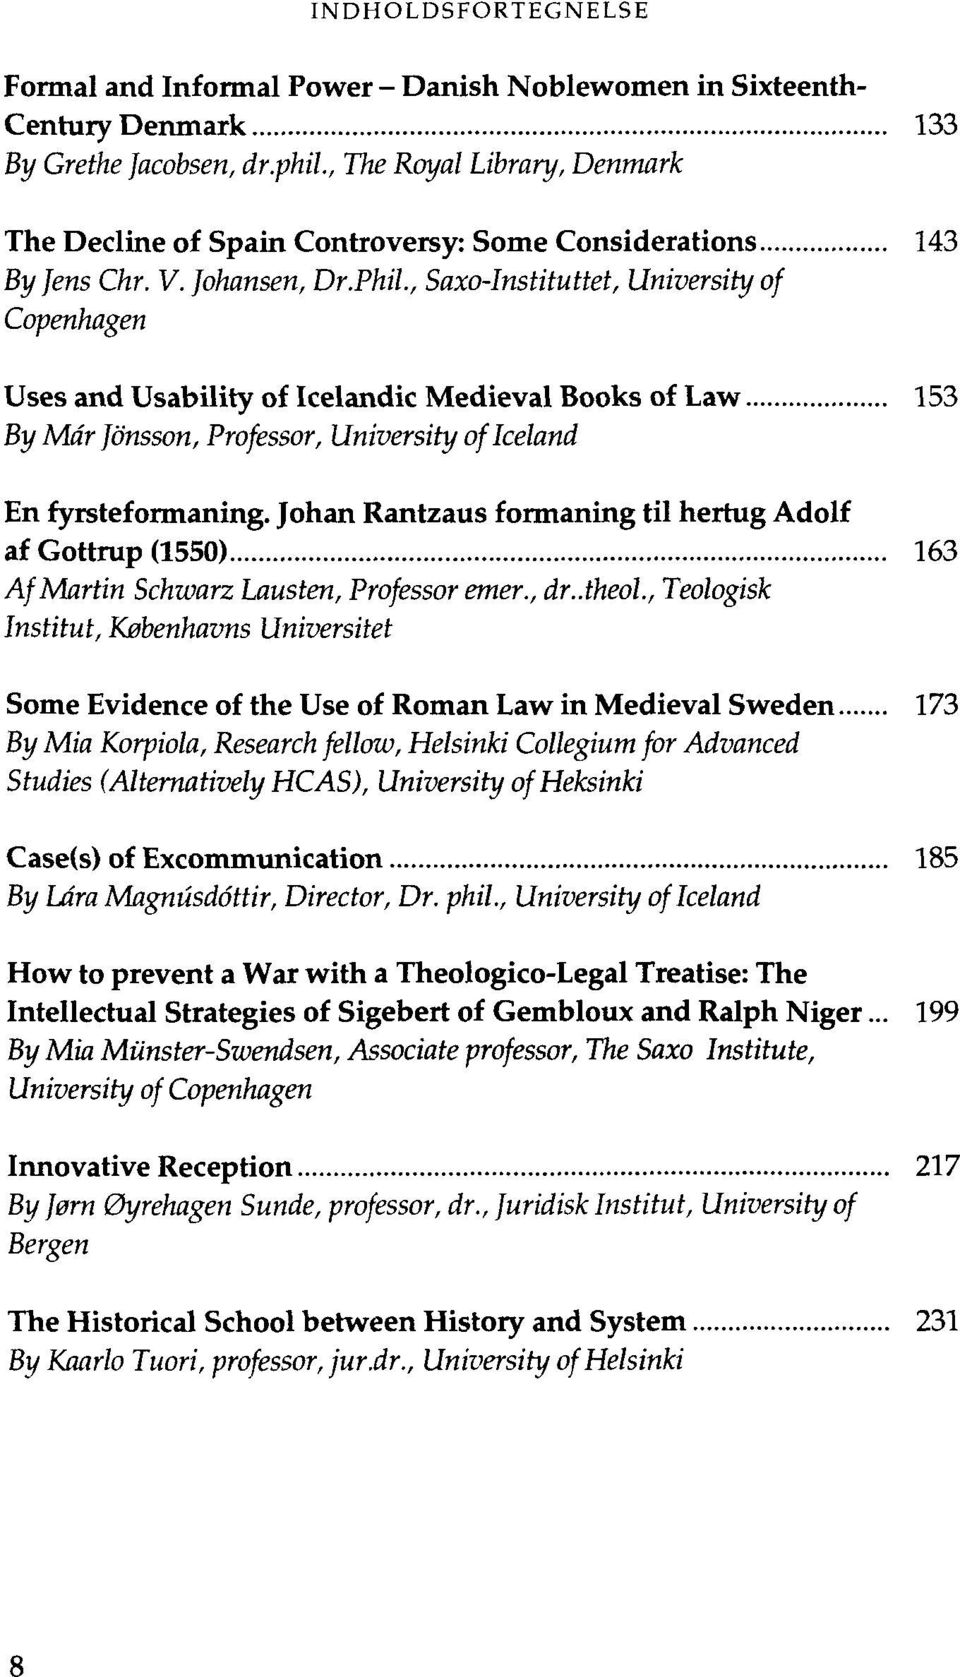 Phil, Saxo-Instituttet, University of Copenhagen Uses and Usability of Icelandic Medieval Books of Law 153 By Mär Jönsson, Professor, University of Iceland En fyrsteformaning.